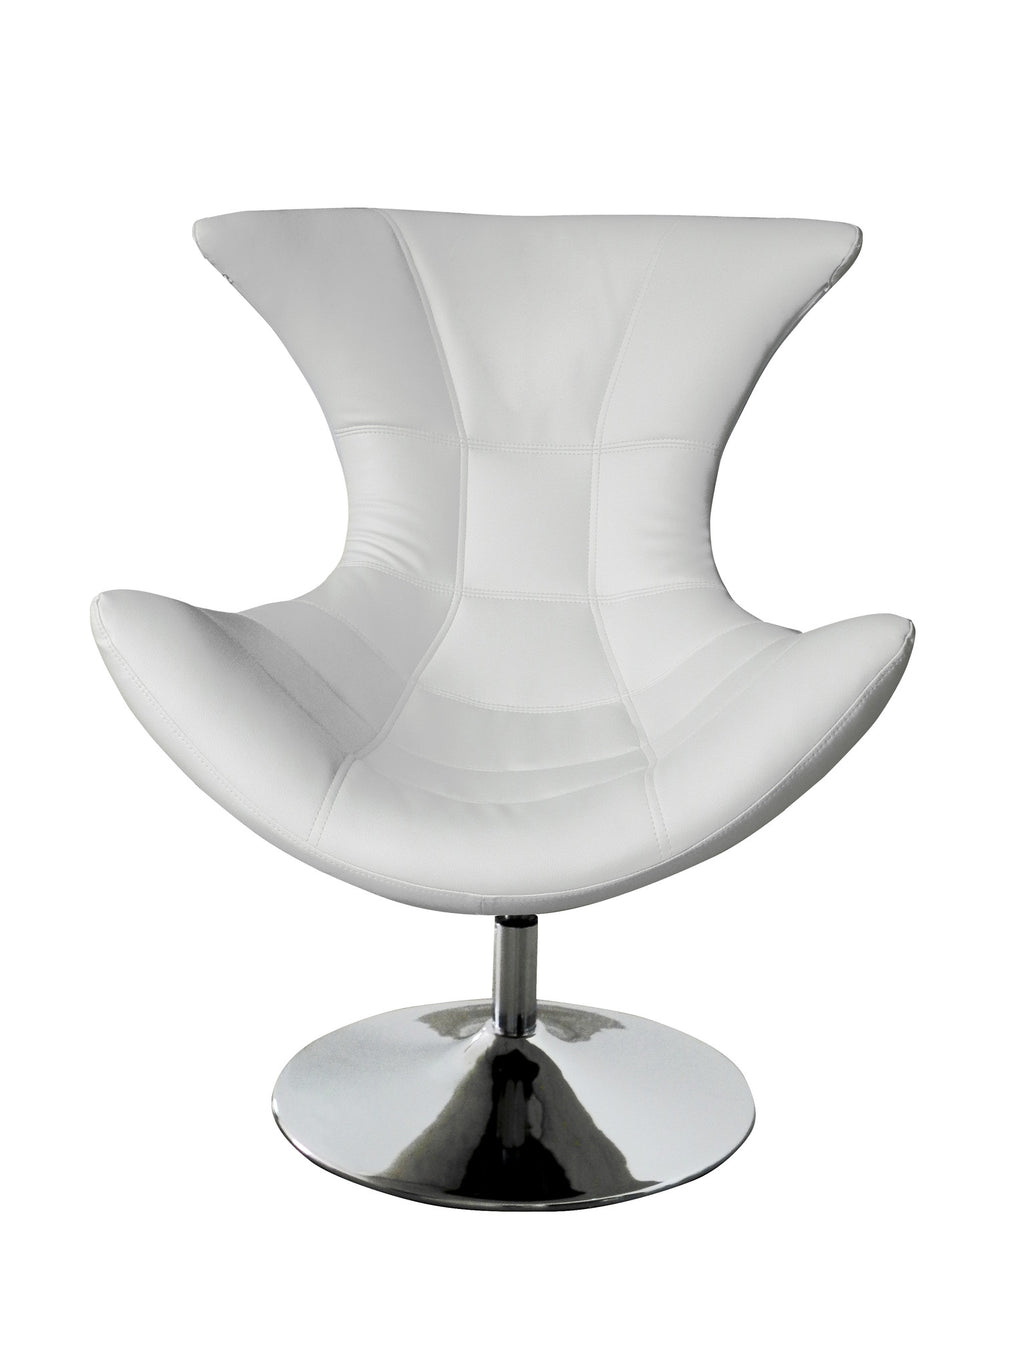 Charlotte Swivel Chair, White faux leather, Chrome base.